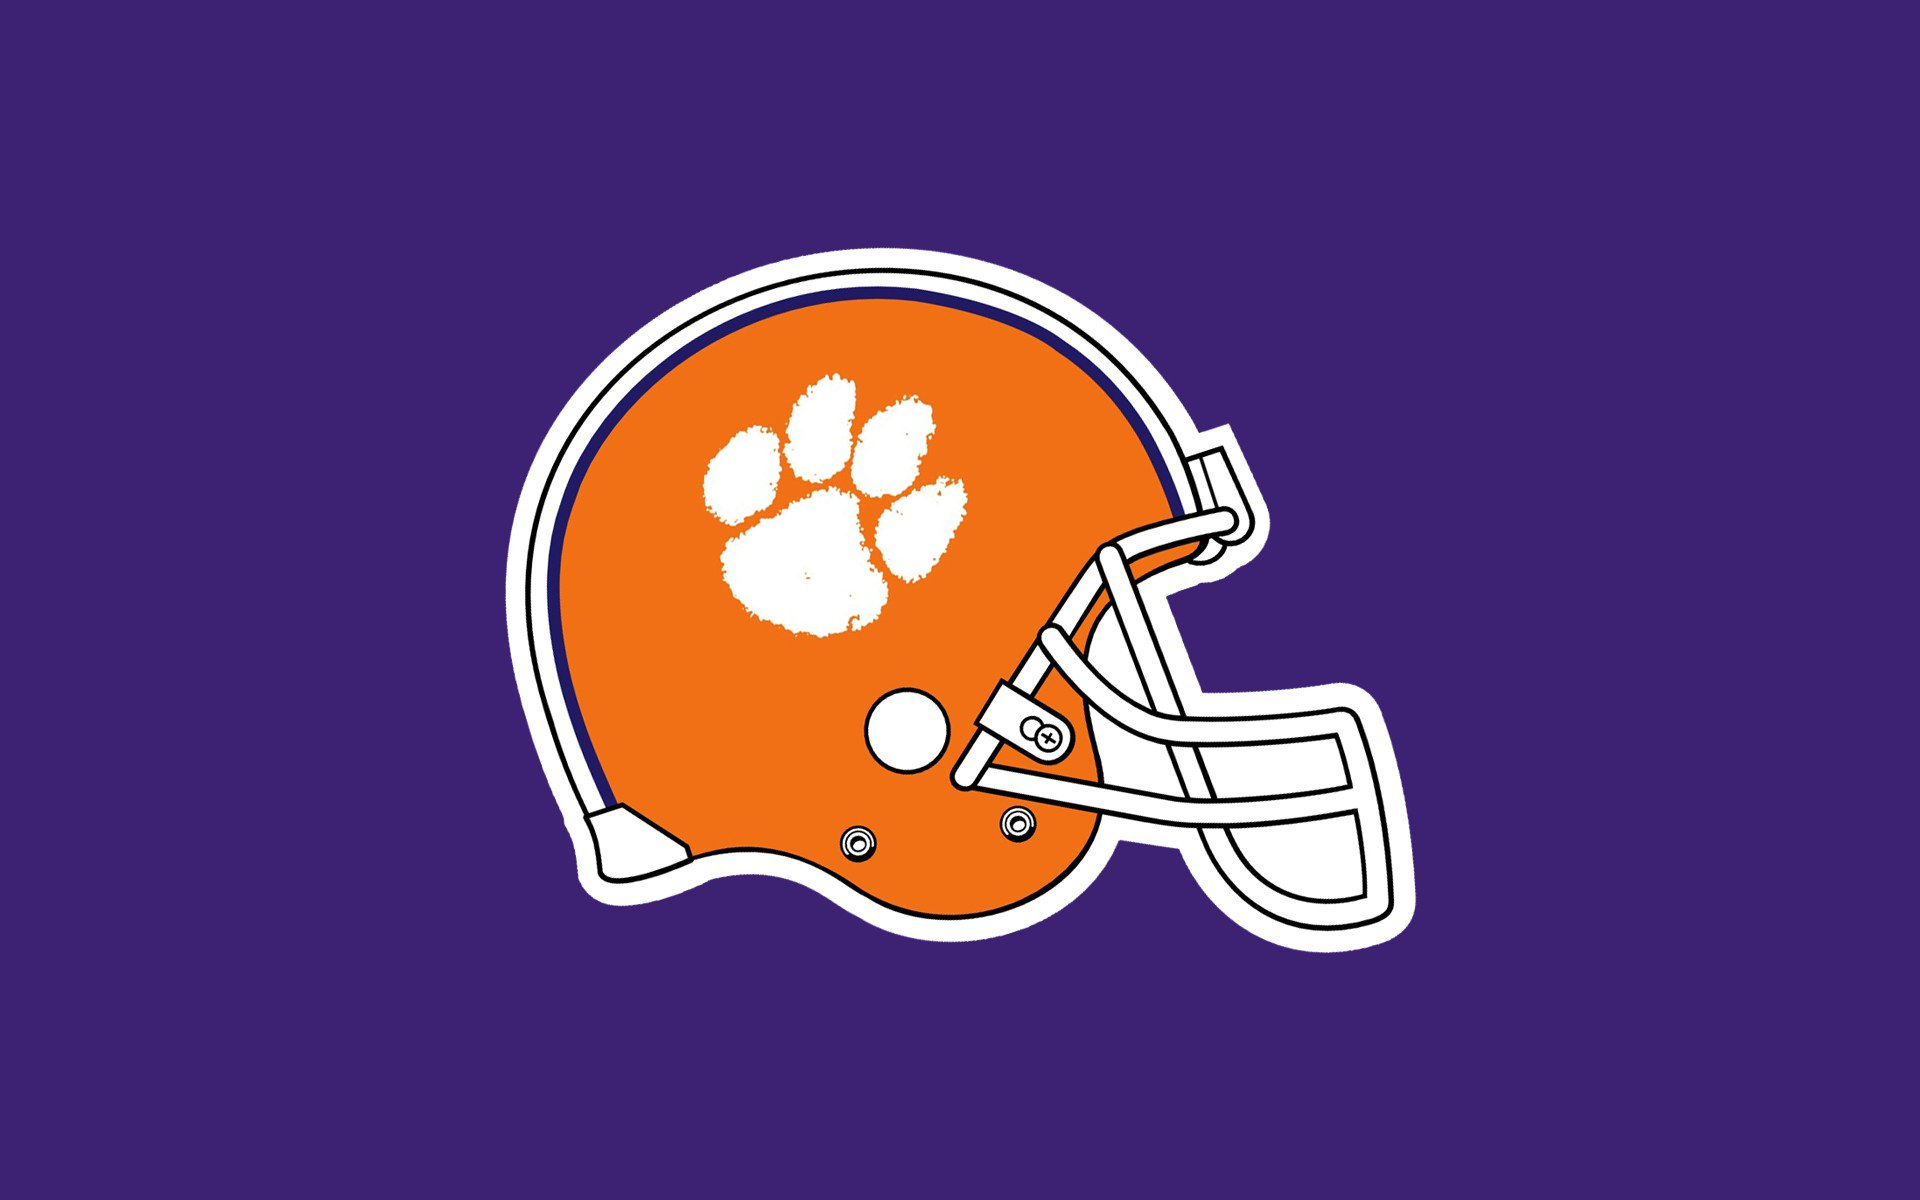 CLEMSON TIGERS college football wallpaper 1920x1200 593972 1920x1200